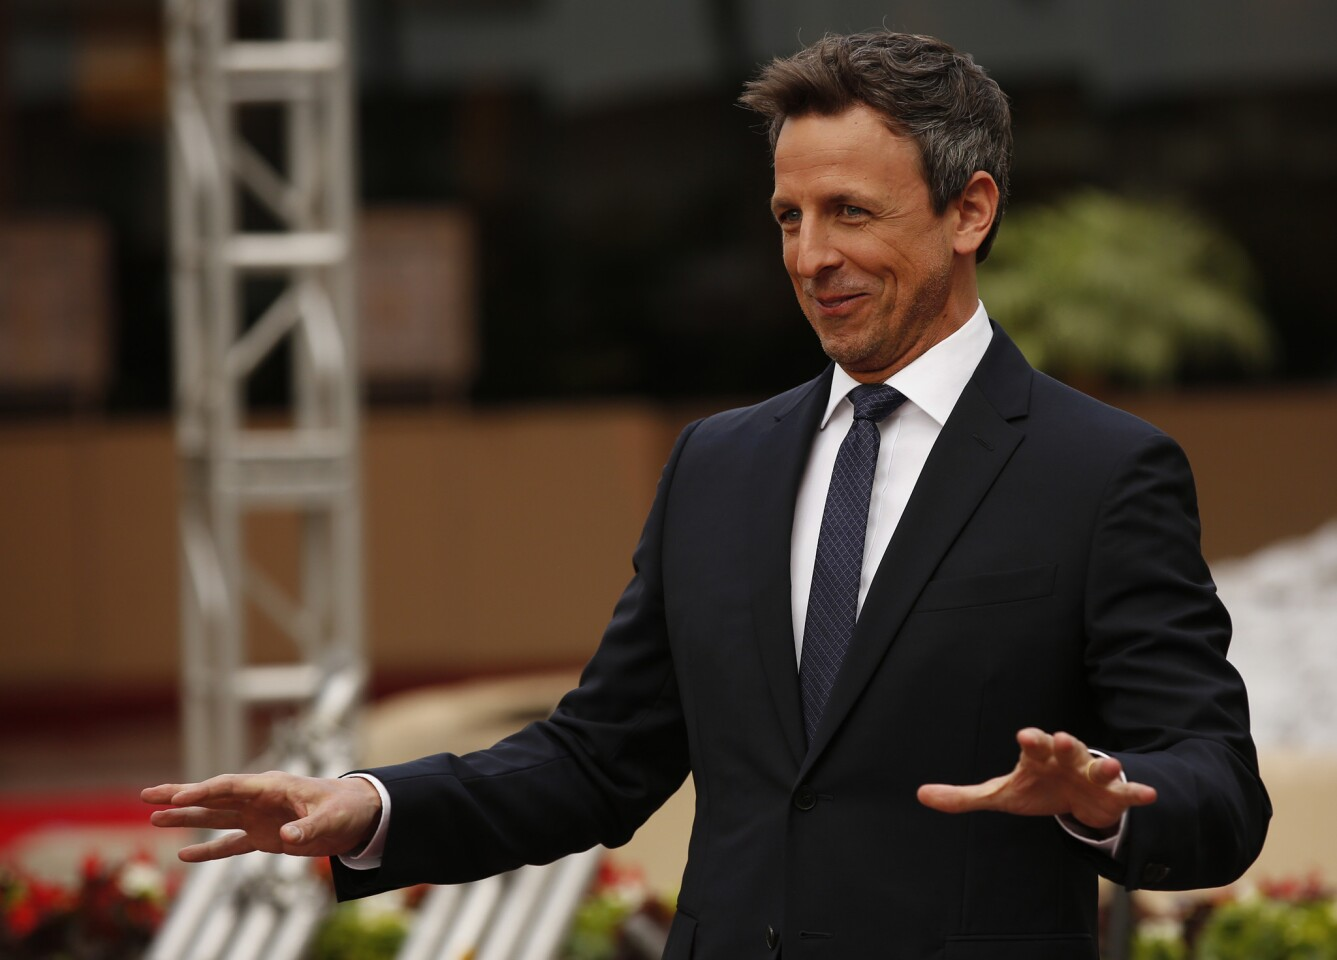 Seth Meyers at the Golden Globes' preview day on Thursday at the Beverly Hilton Hotel in Beverly Hills. Meyers will host Saturday's awards show.